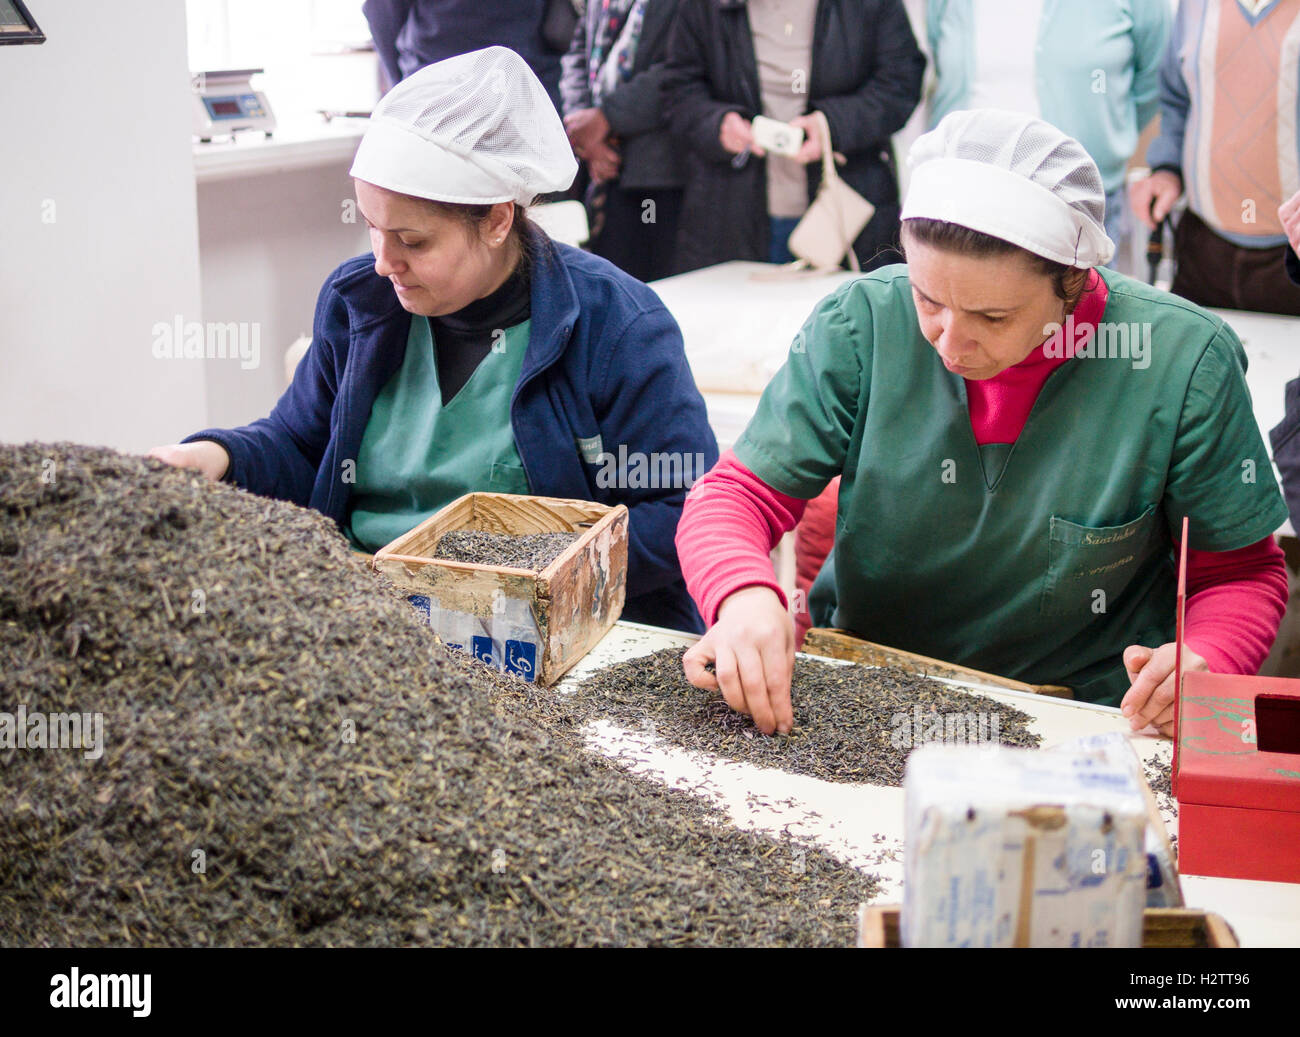 Sorting Tea Leaves at Cha Gorreana. Two women sort through a pile of fermented tea leaves to remove the stems. - Stock Image